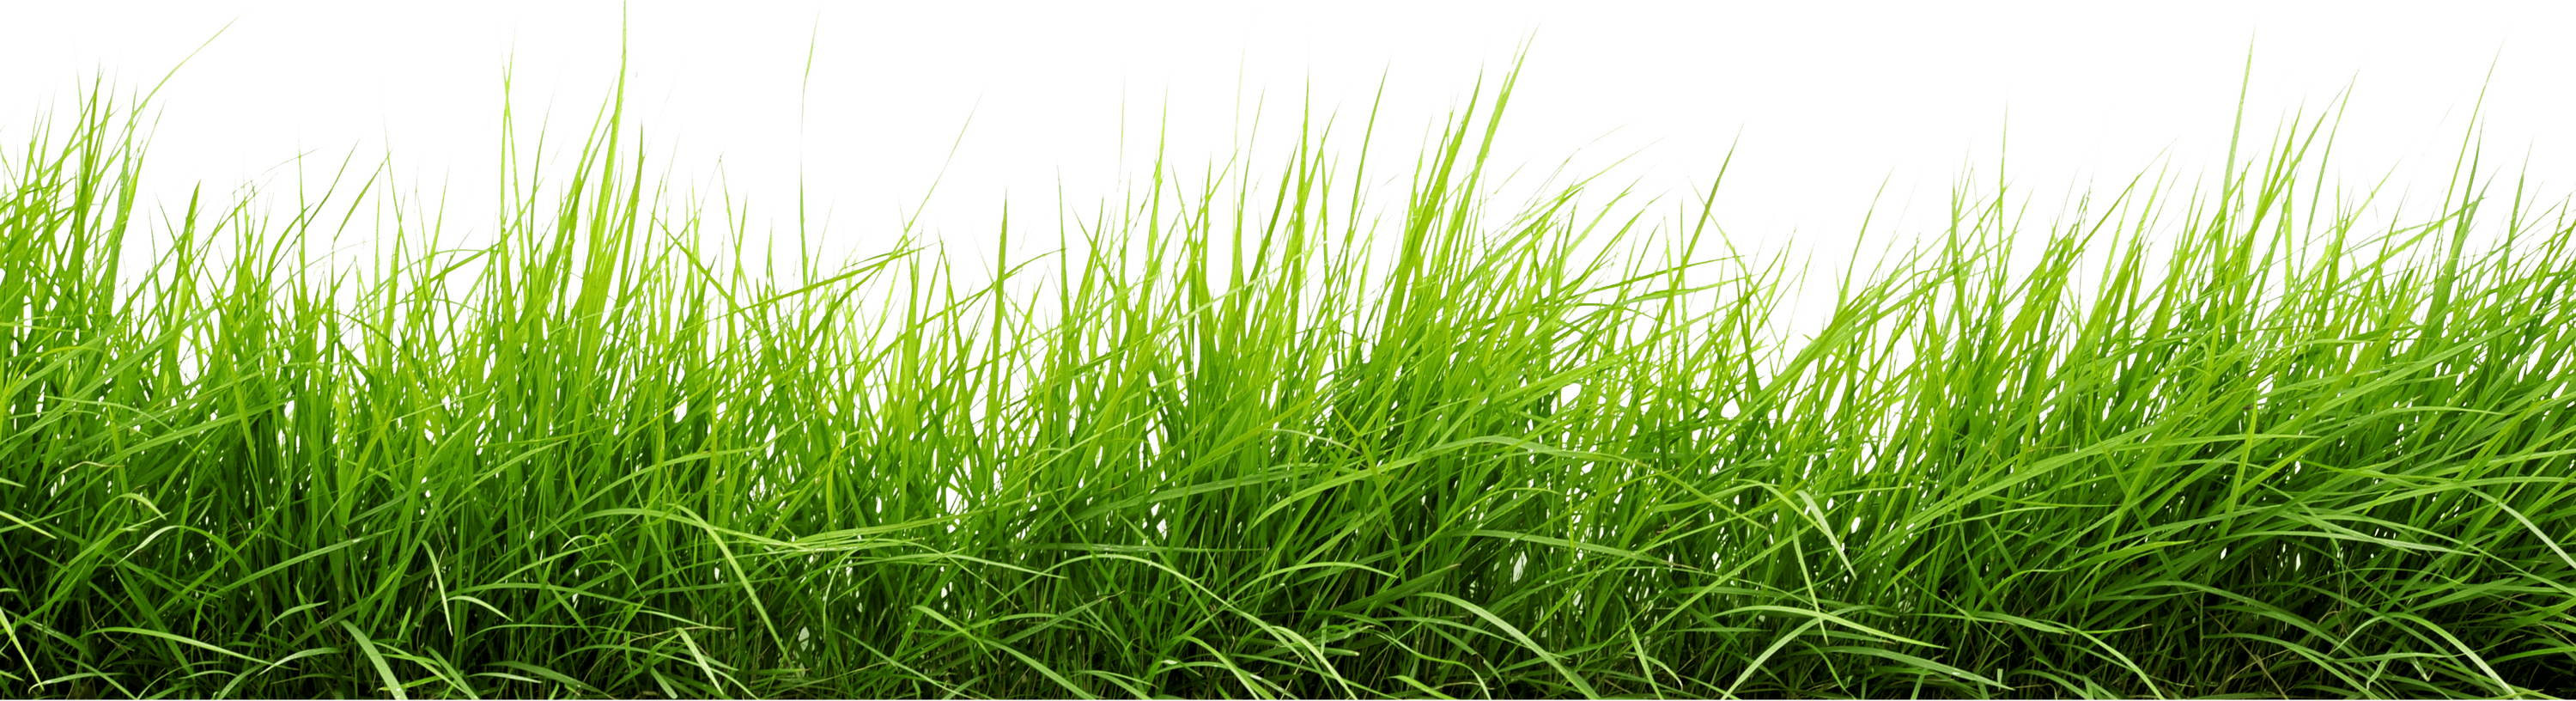 Png grass. Line of image purepng